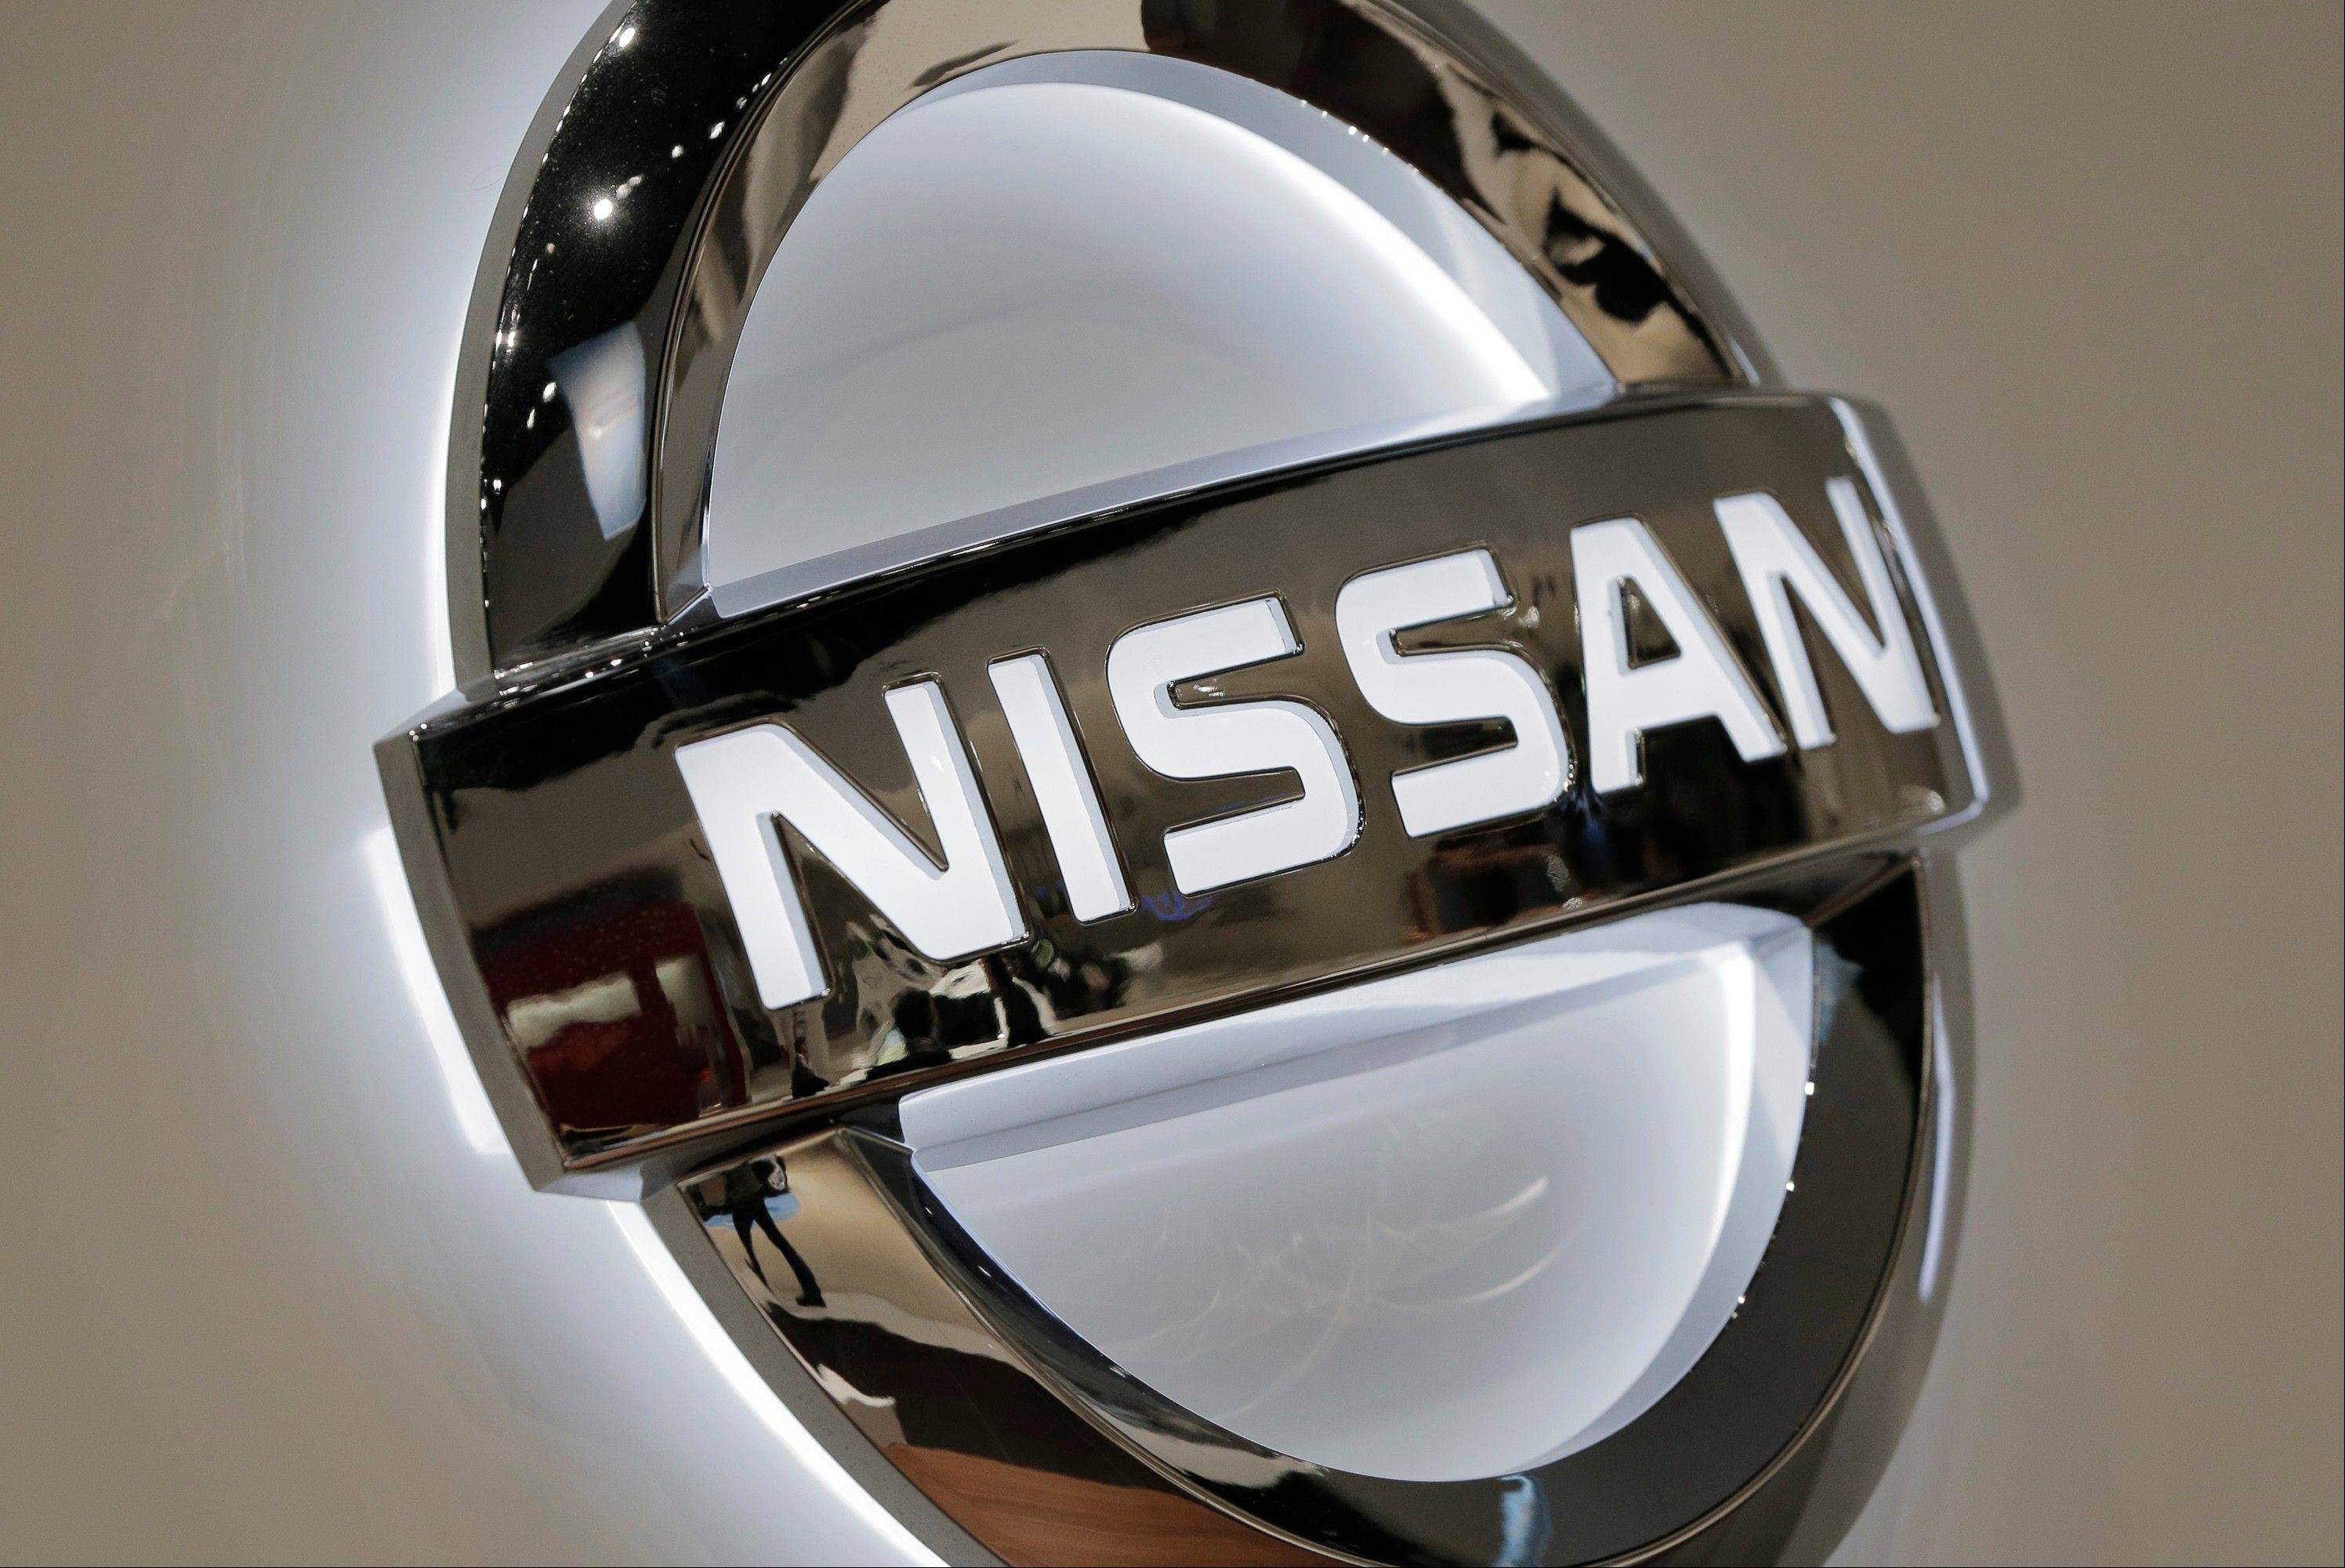 Nissan�s quarterly profit rose nearly 8 percent, but the Japanese automaker lowered its full-year forecasts Tuesday because of a sales slump in China and weakness in Europe.